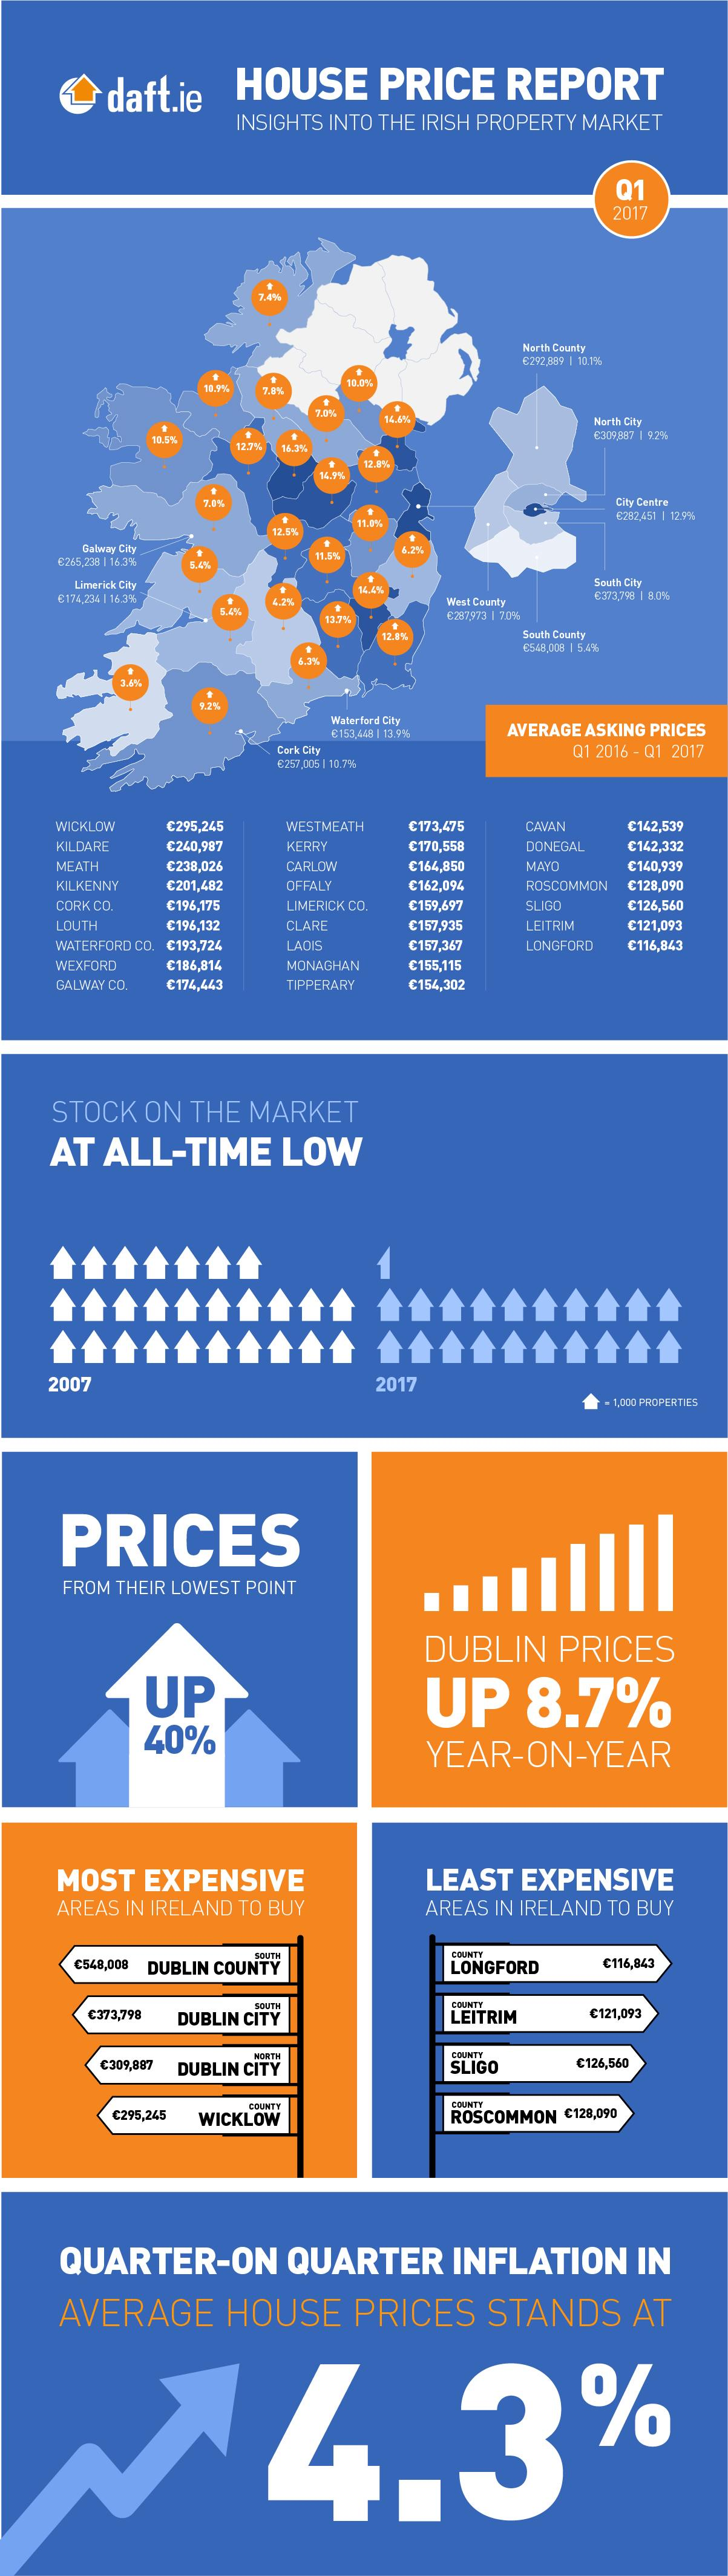 Daft.ie House Price Report: Q1 2017 Infographic